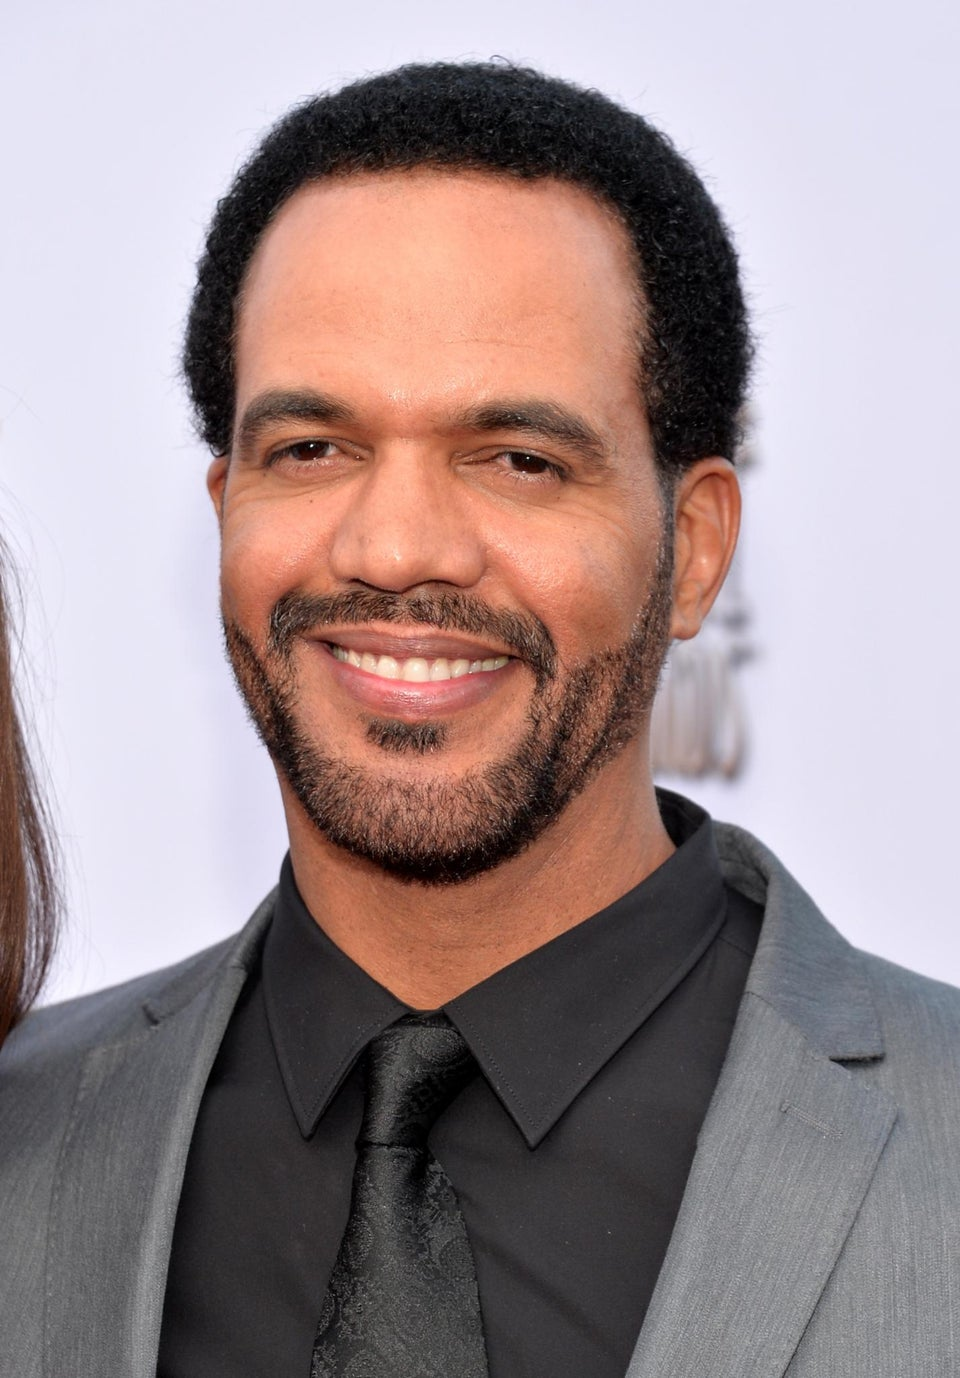 'Young and the Restless' Star Kristoff St. John Was Reportedly Treated For Depression Days Before Death